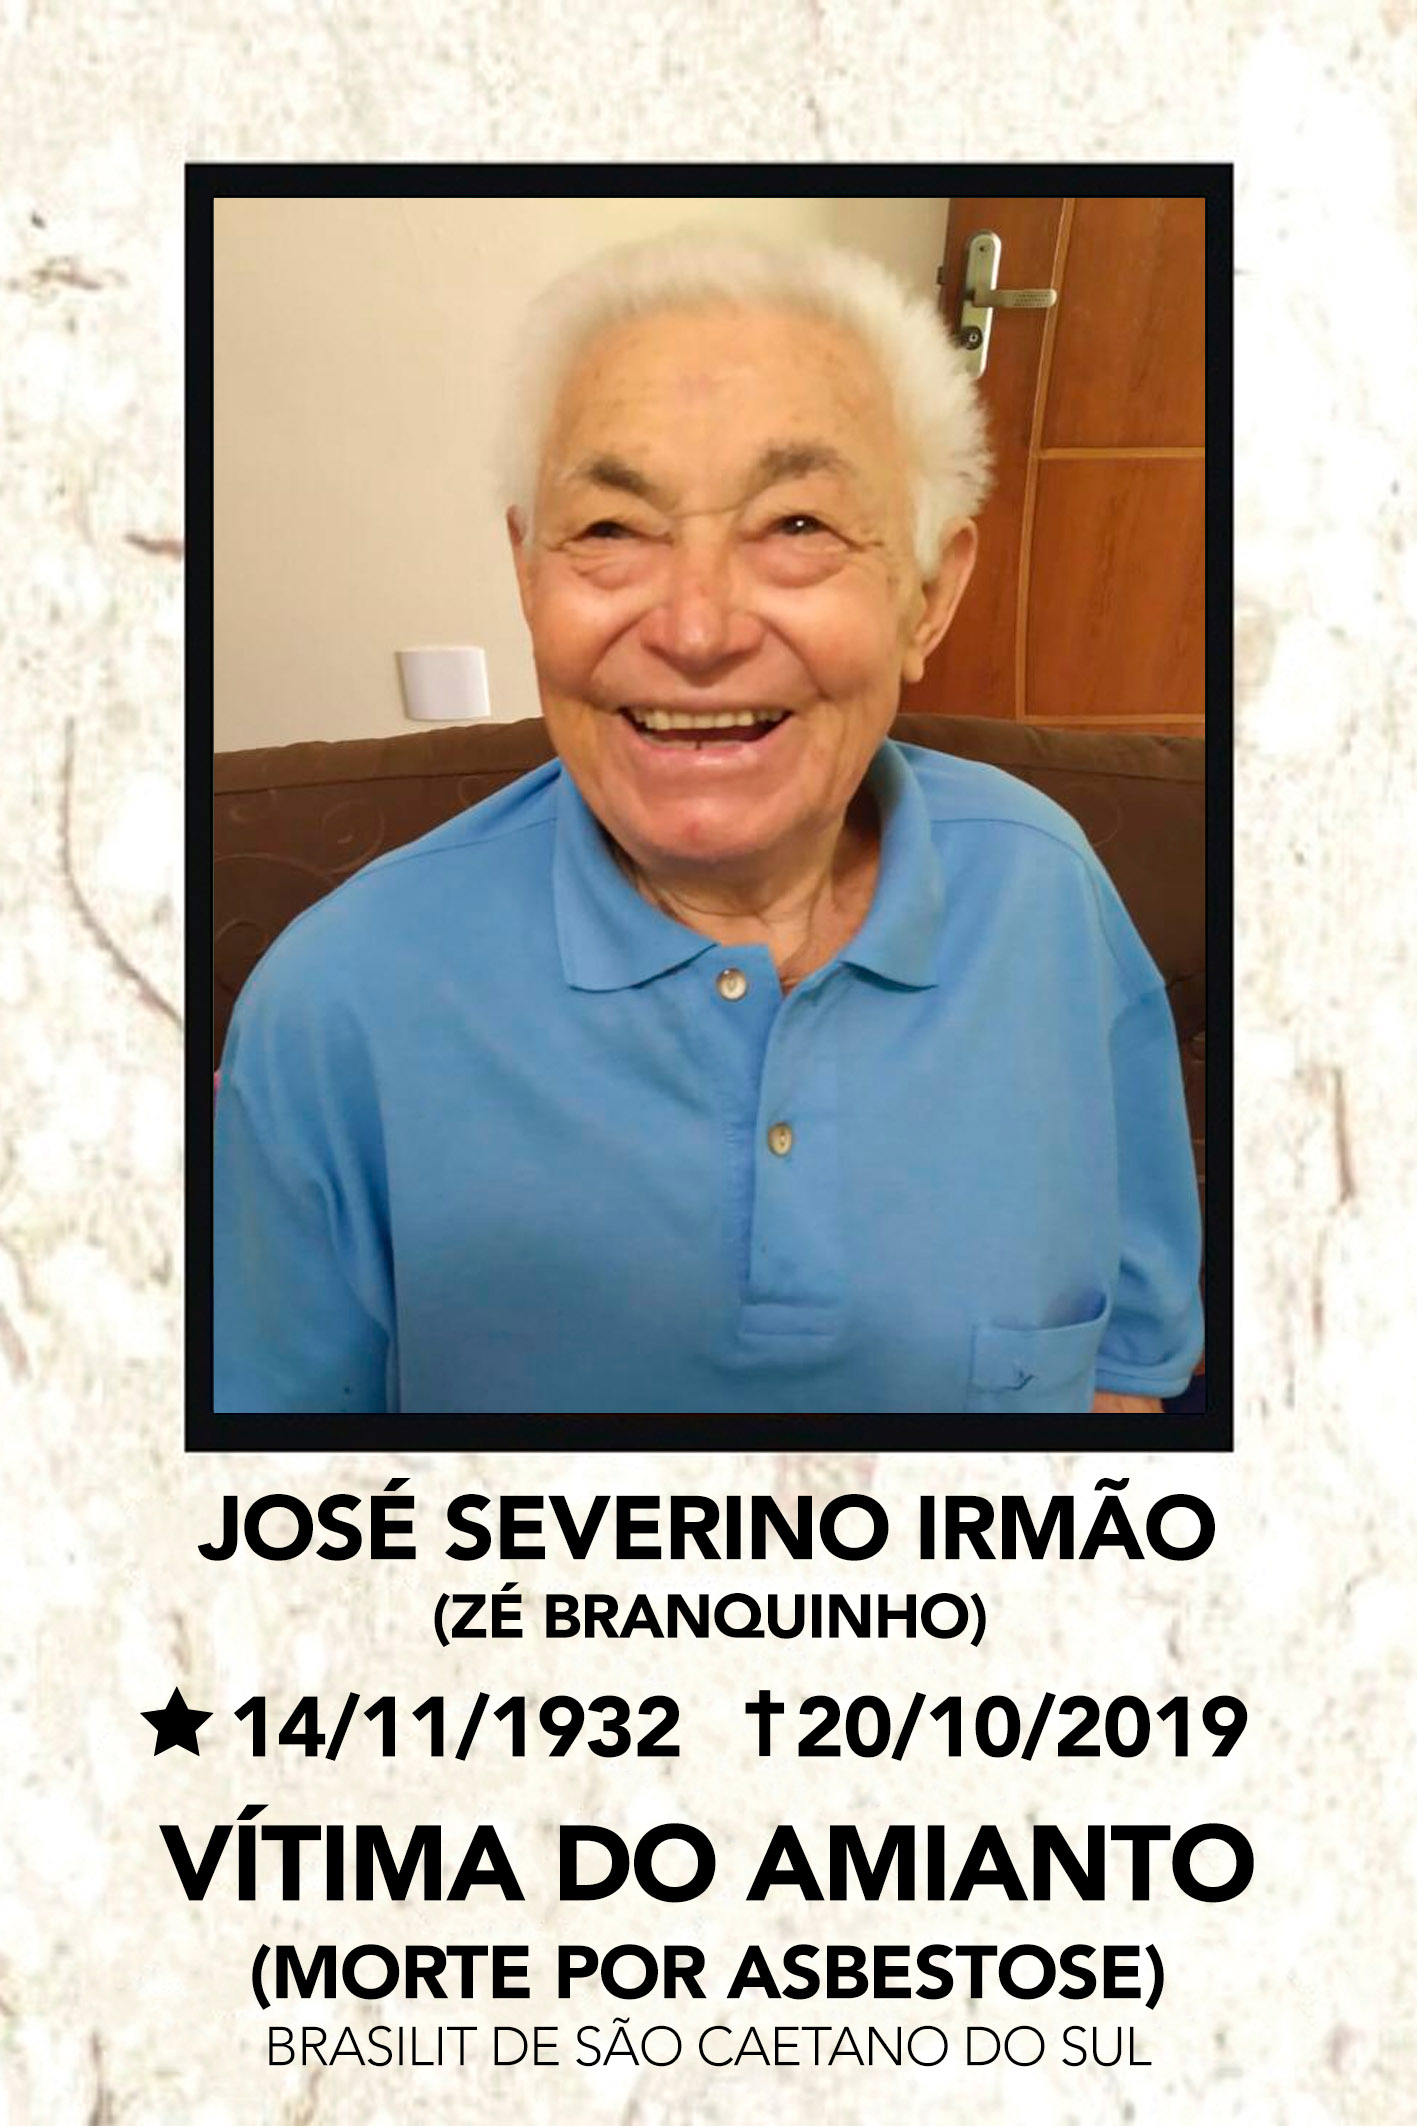 BANNER ABREA MEMORIAL JOSE SEVERINO